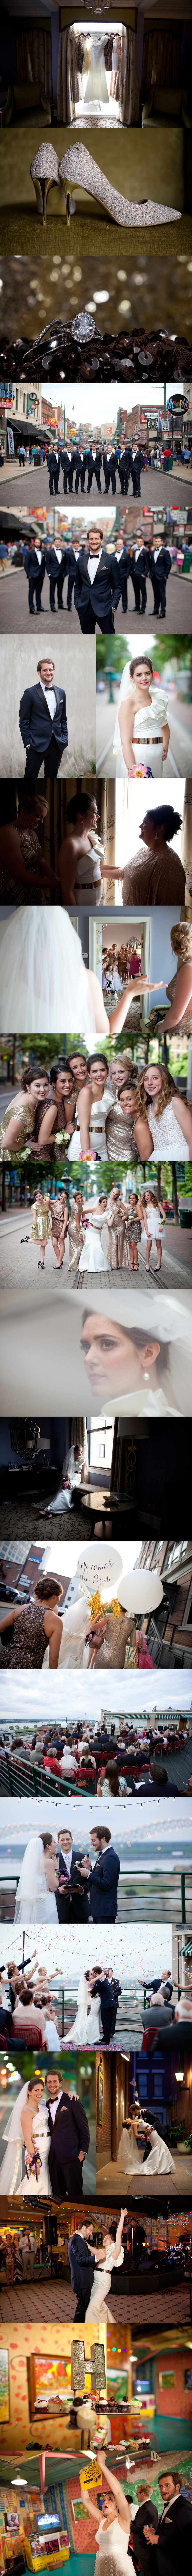 Center for Southern Folklore Wedding